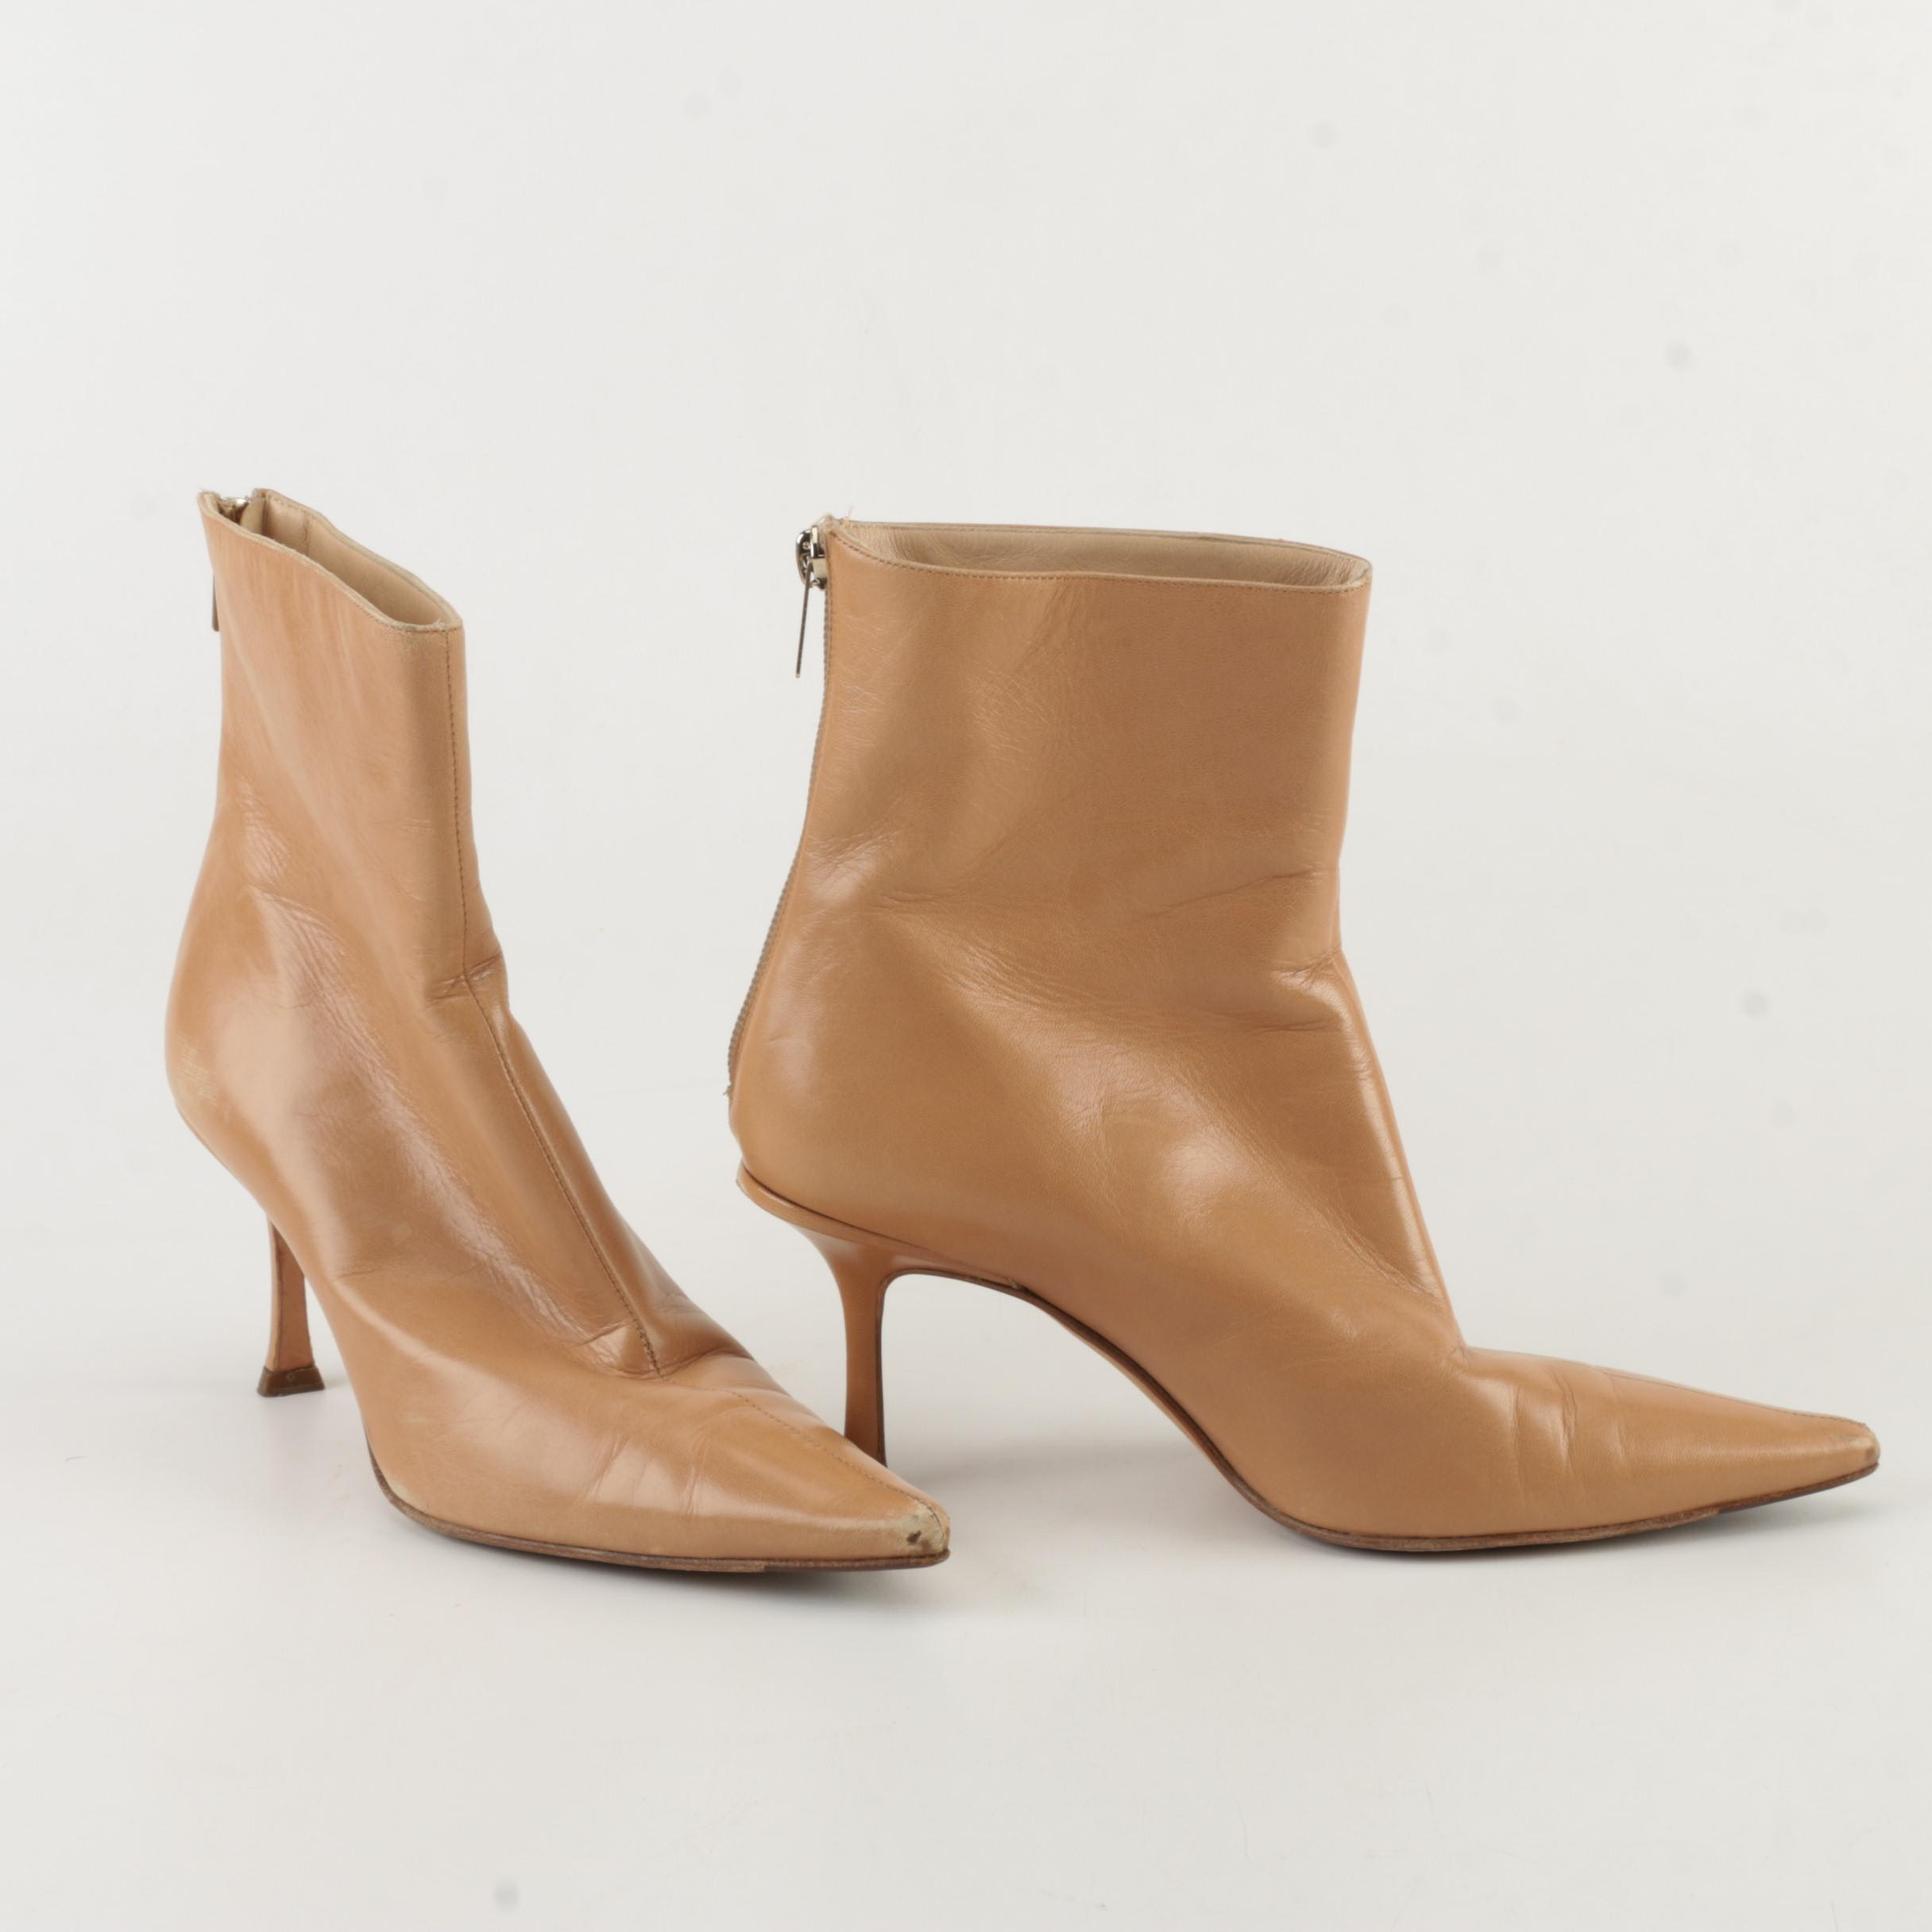 Jimmy Choo London Ankle Boots